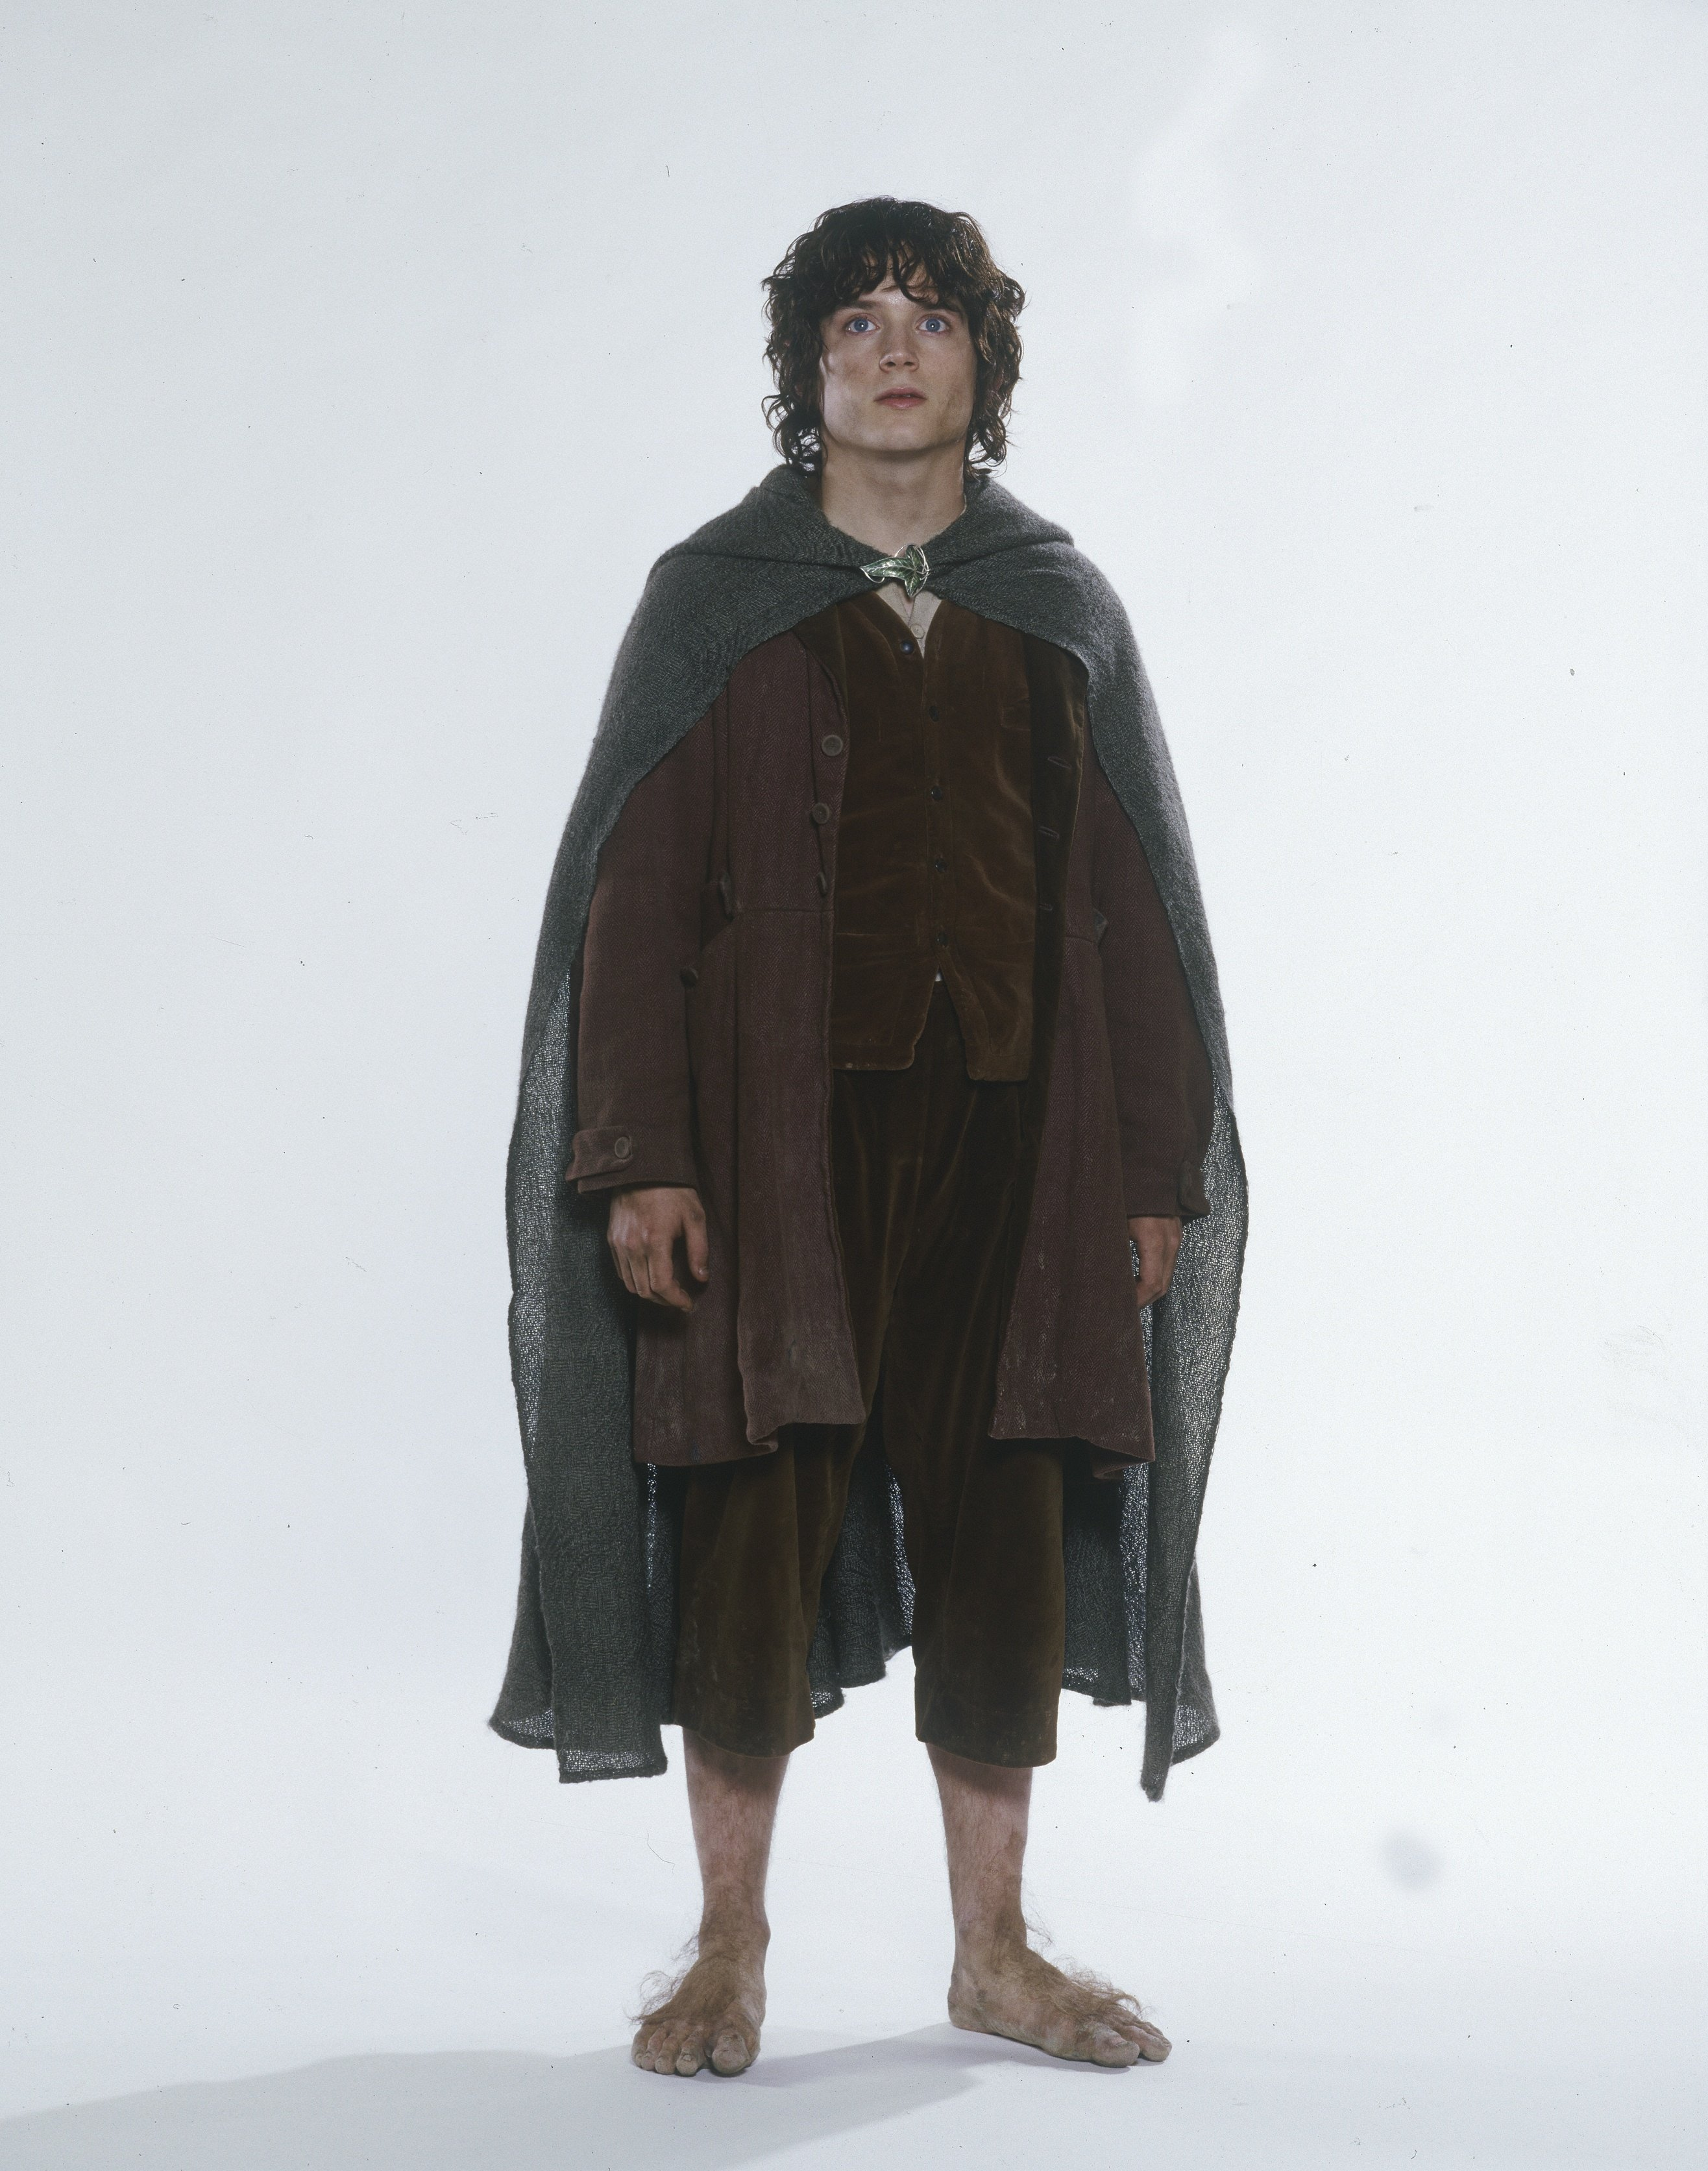 Frodo lord of the rings full body